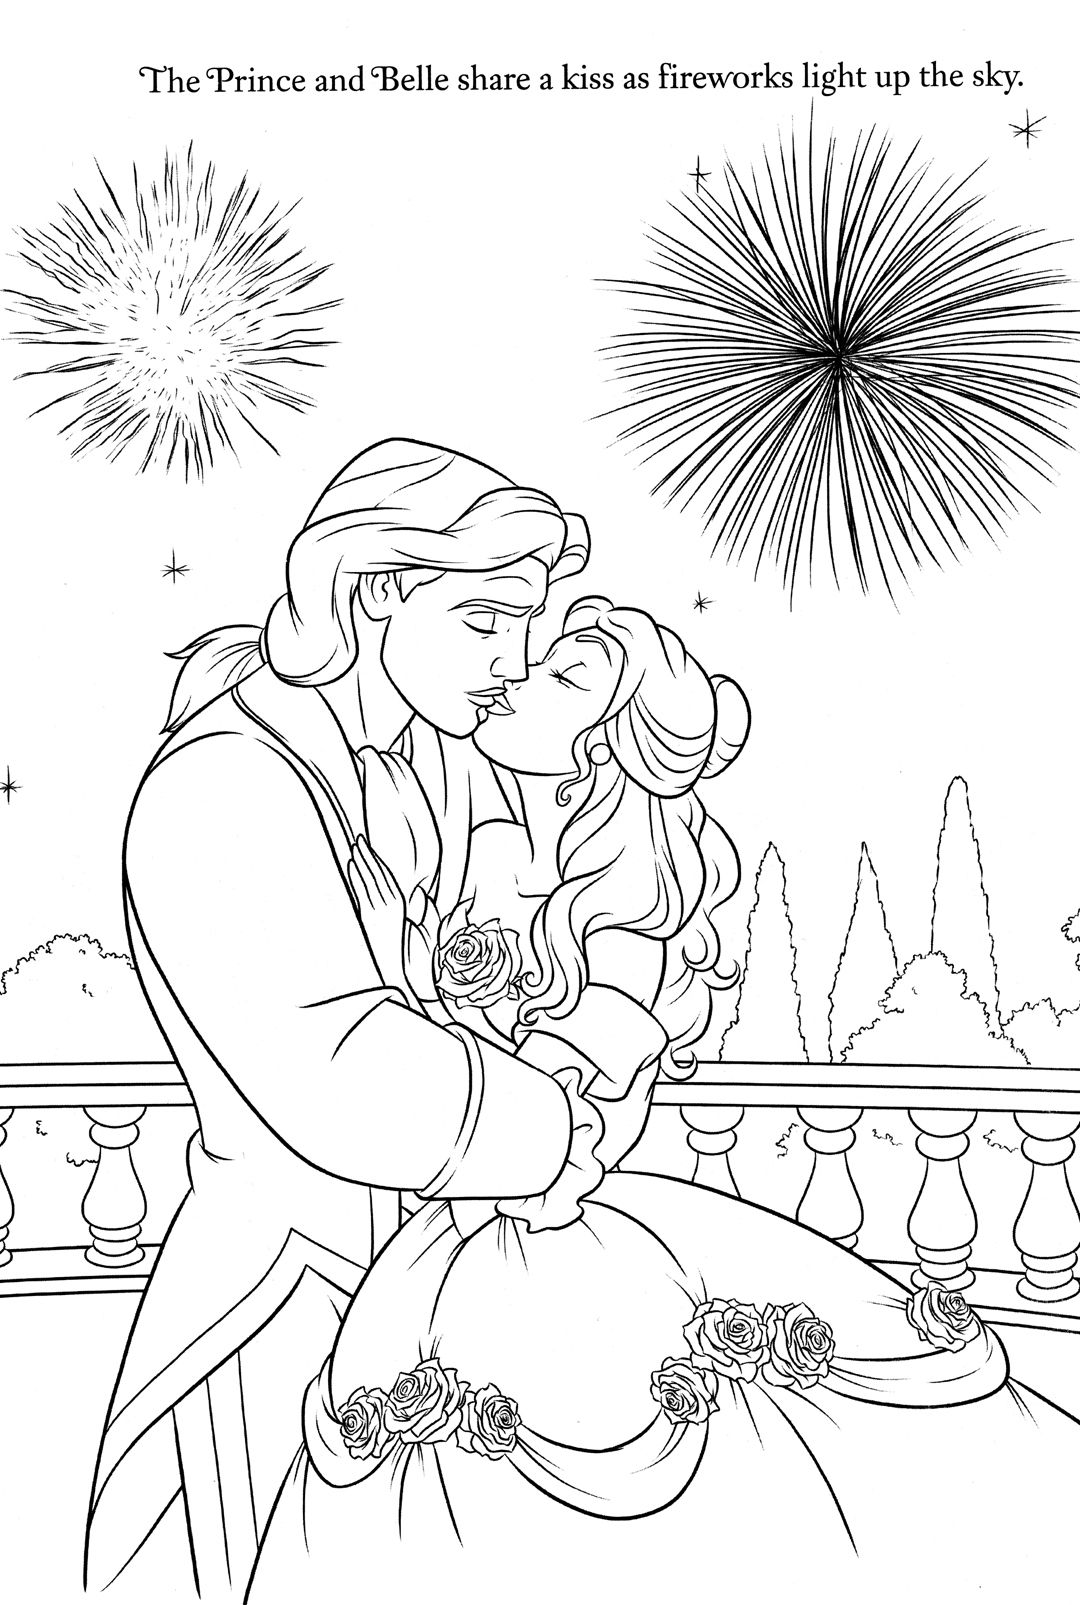 Beauty and Beast, Coloring Pages | Disney - Coloring Pages ...